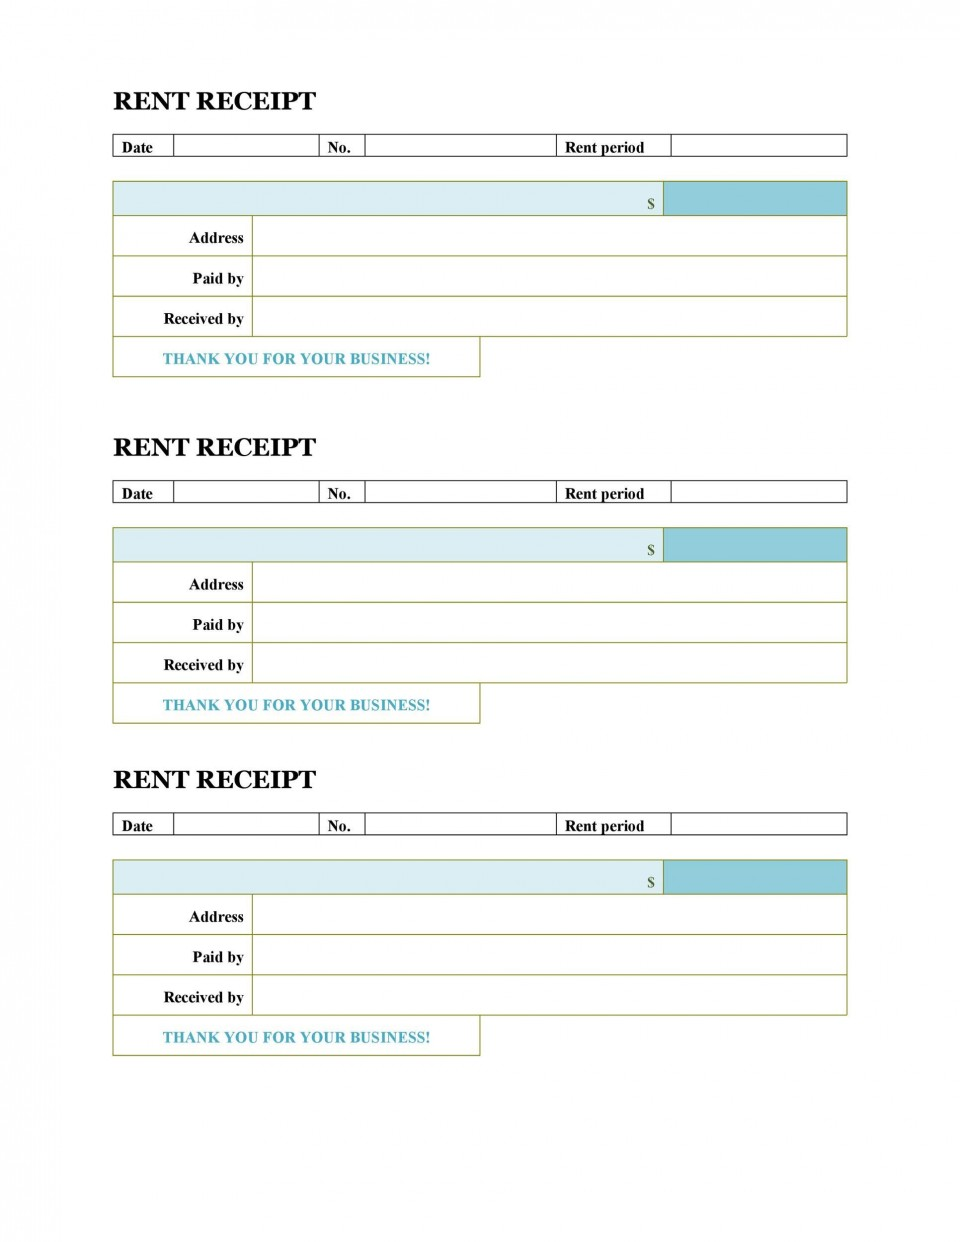 008 Unforgettable House Rent Receipt Template India Doc Sample  Format Download960